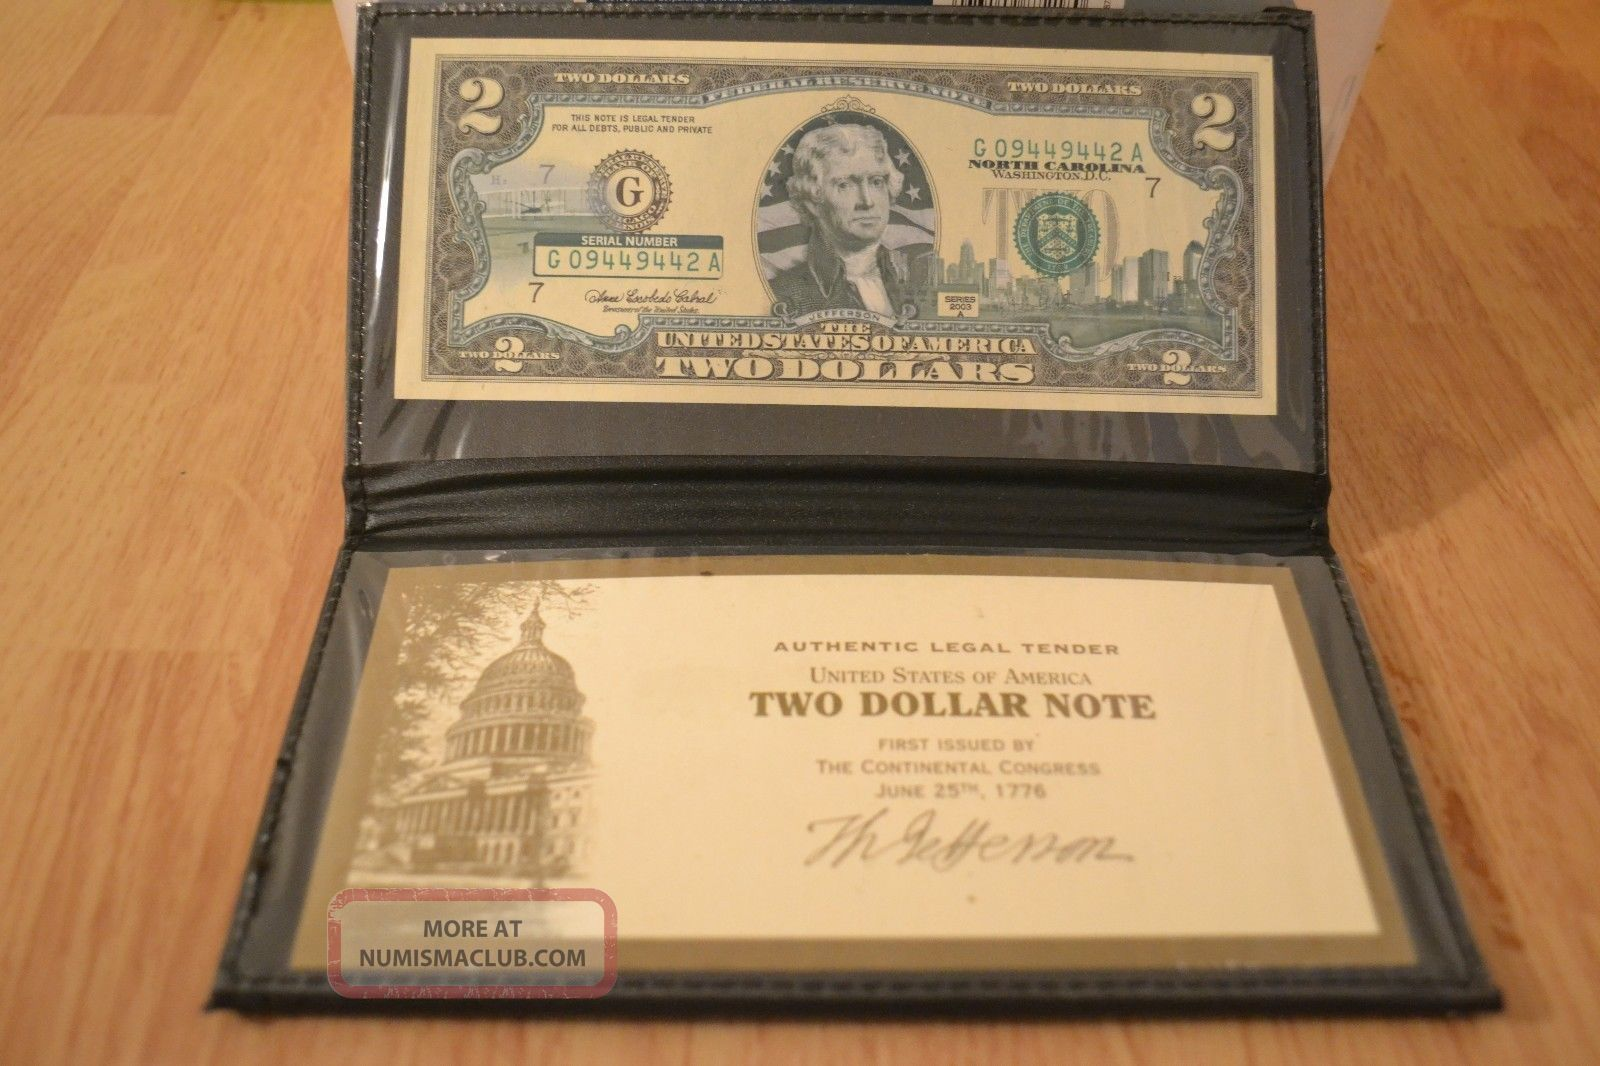 Bu North Carolina $2 Two Dollar Bill Colorized Statelandmark Uncirculated 2003 - A Small Size Notes photo